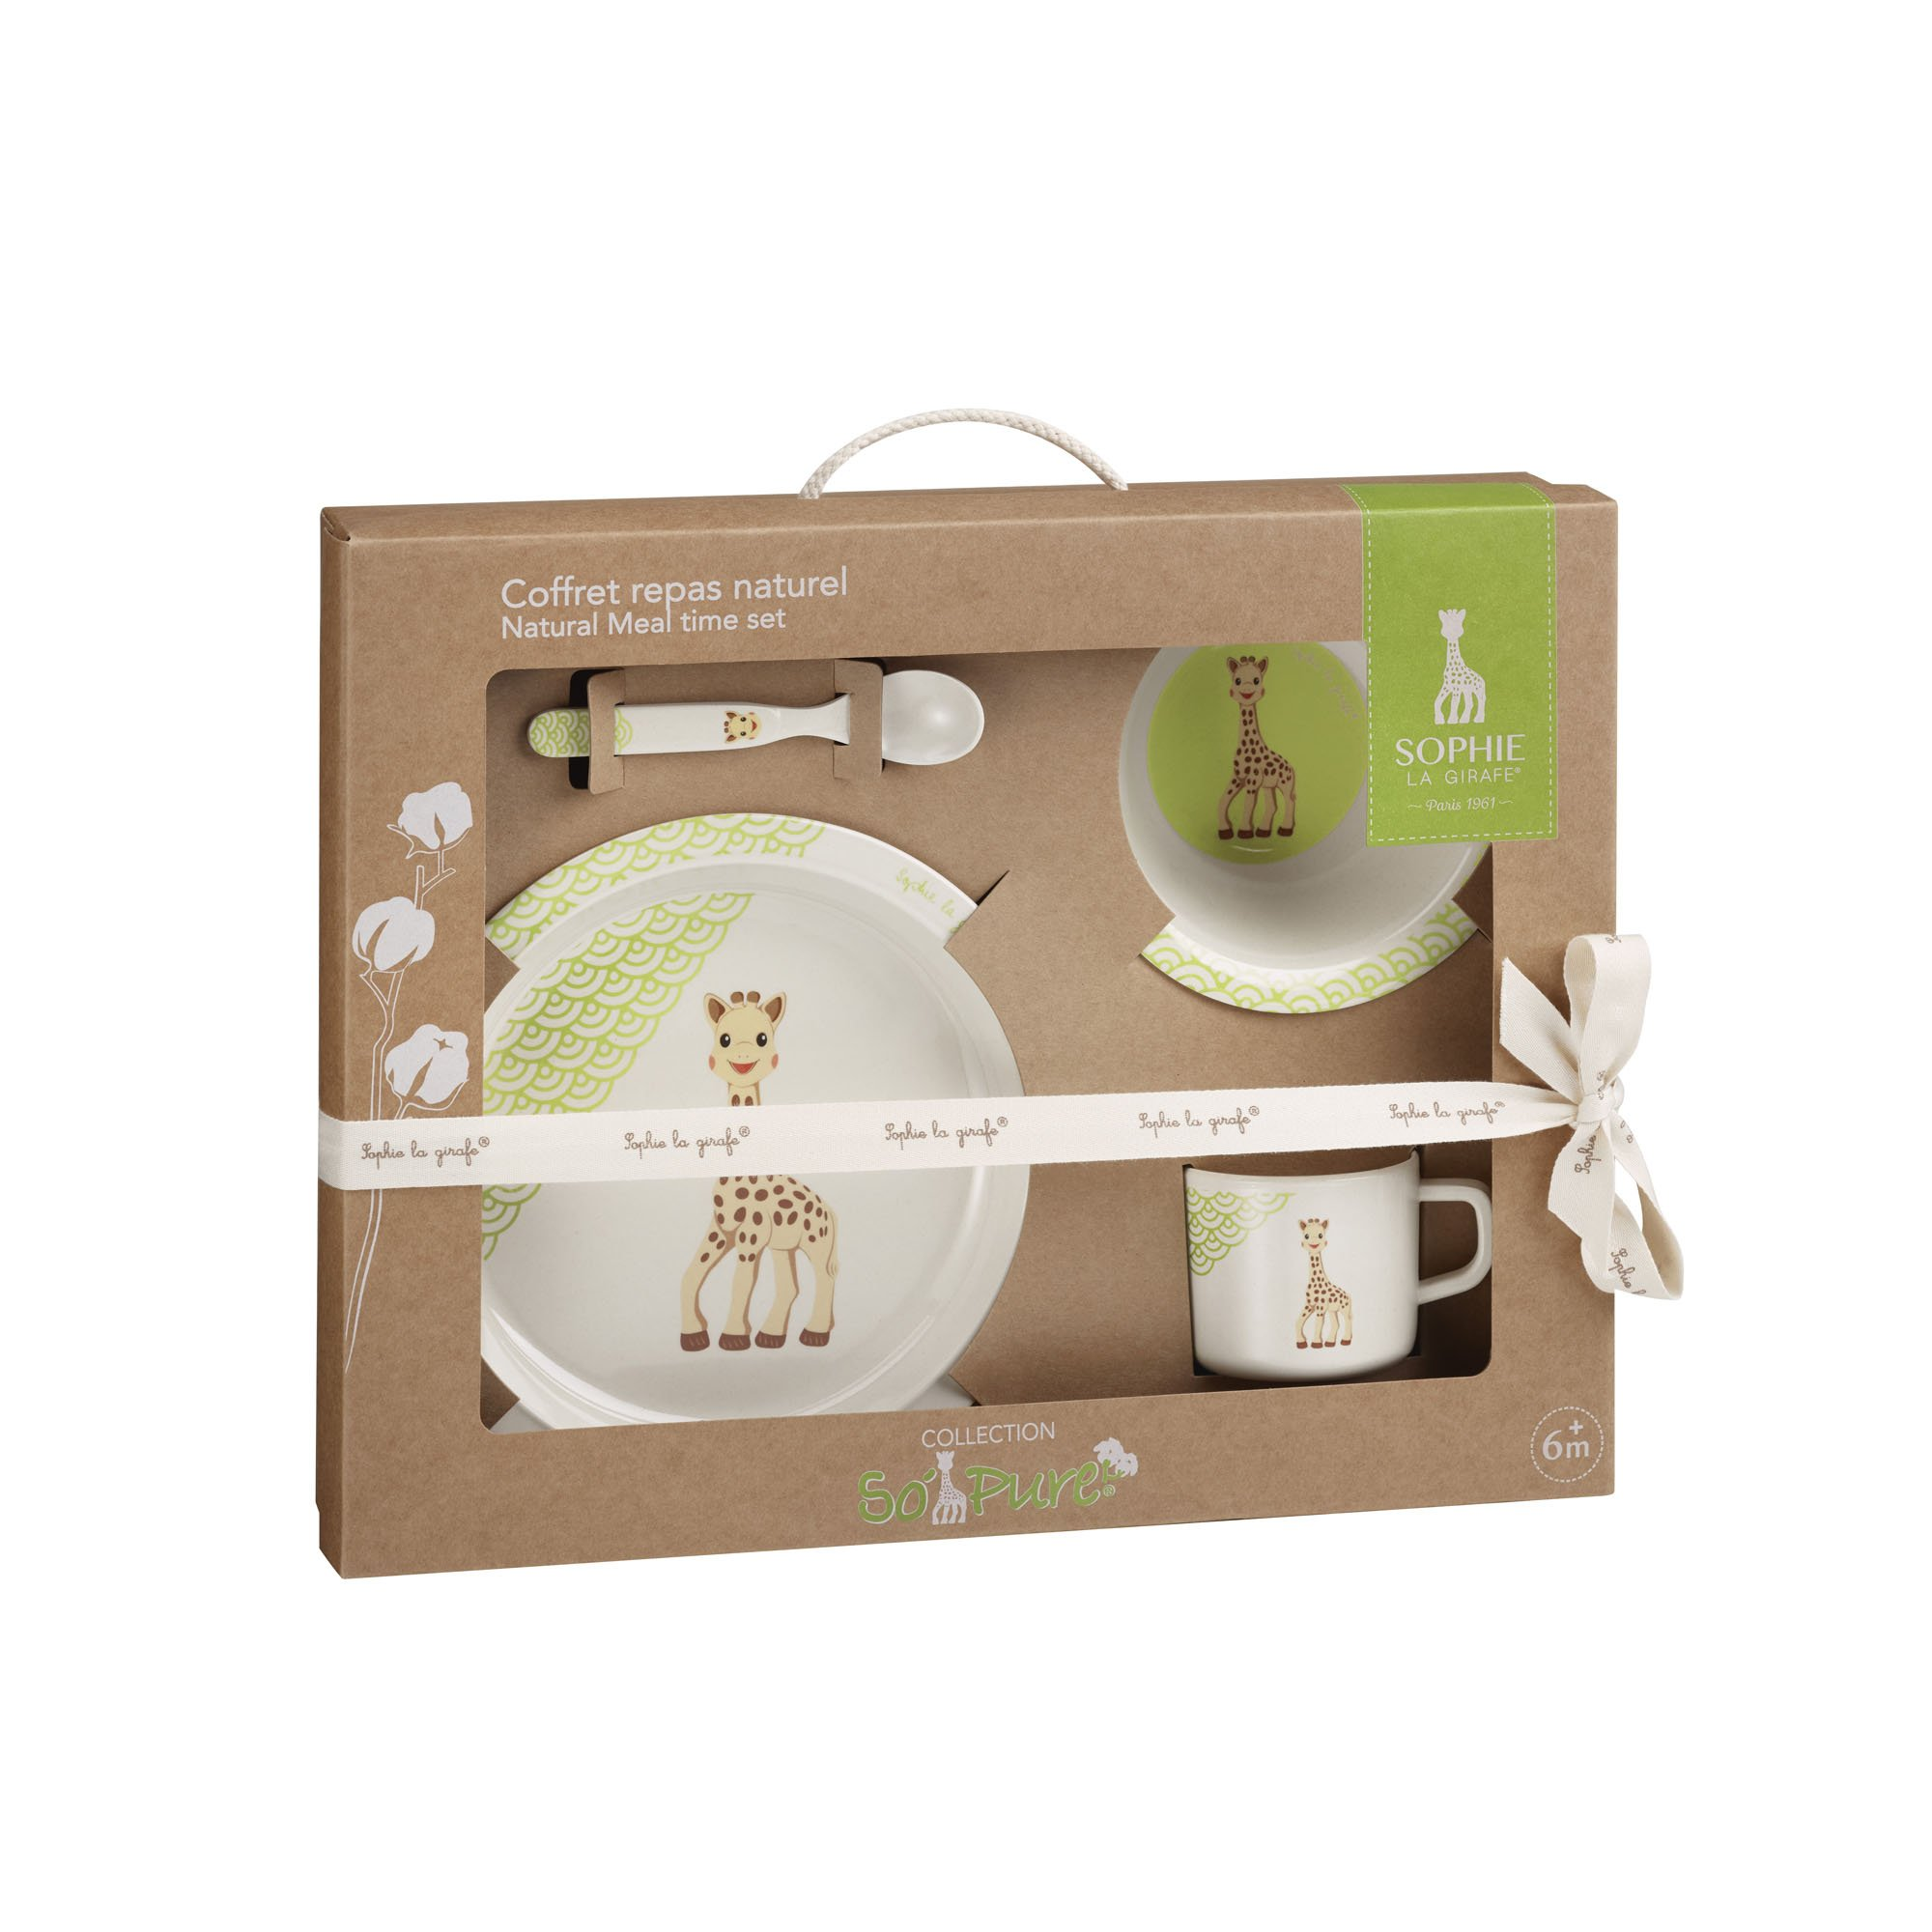 Sophie La Girafe Bamboo Natural Mealtime Set